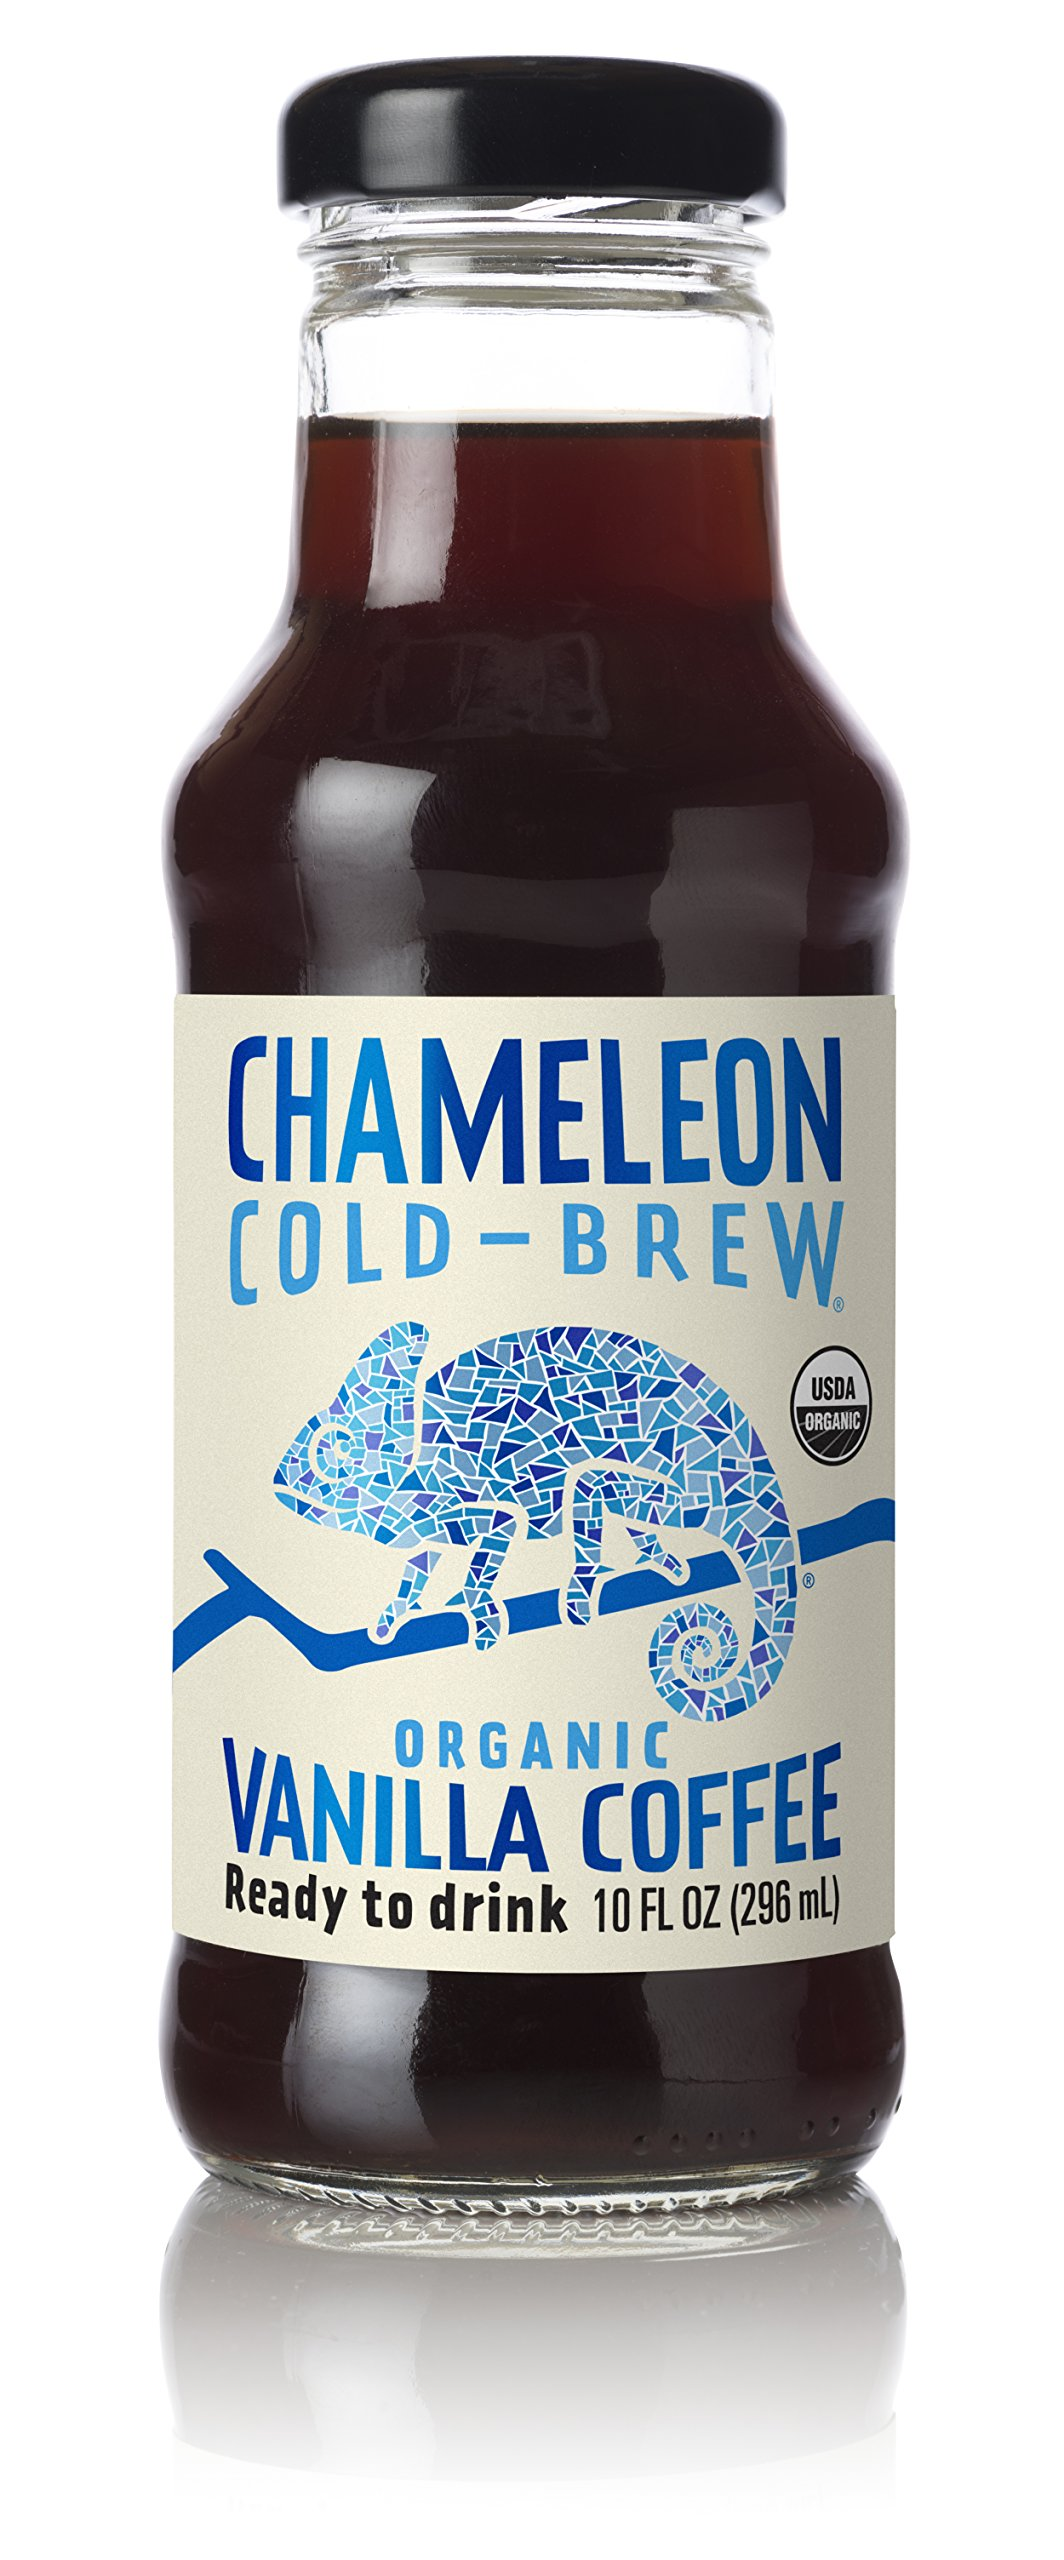 Chameleon Cold-Brew Vanilla Ready-to-Drink Coffee 12 pack